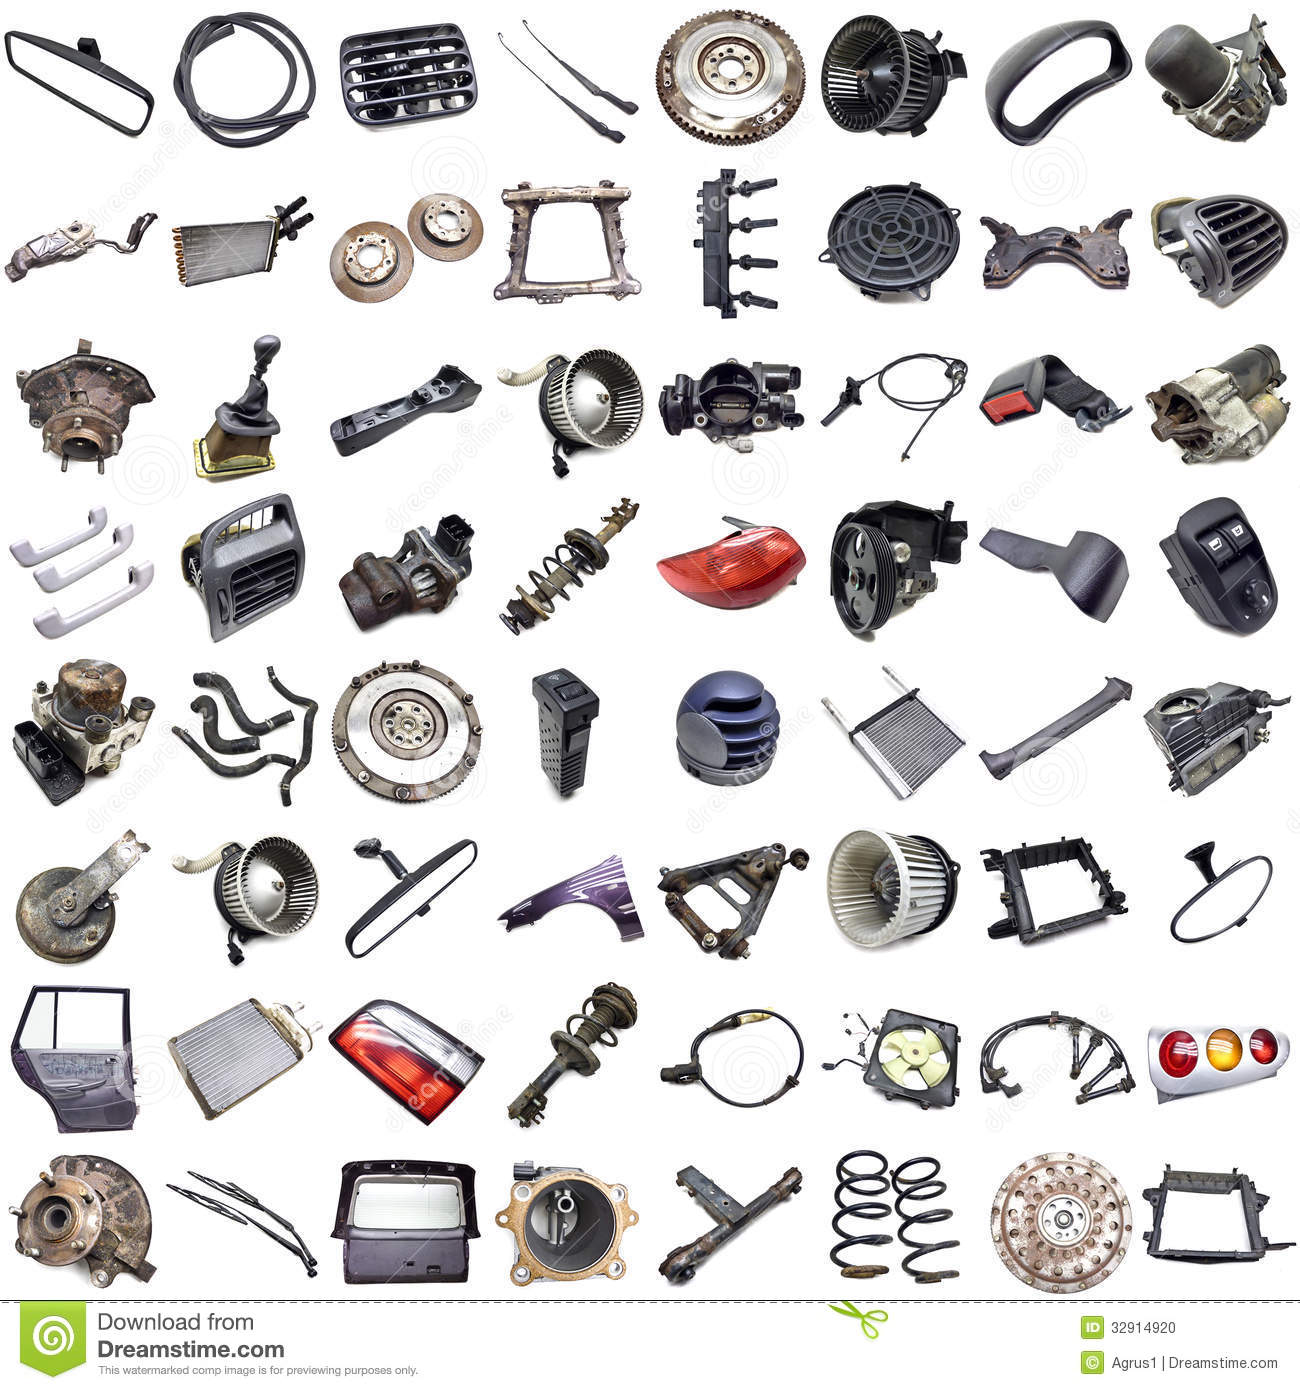 Clipart free car parts.